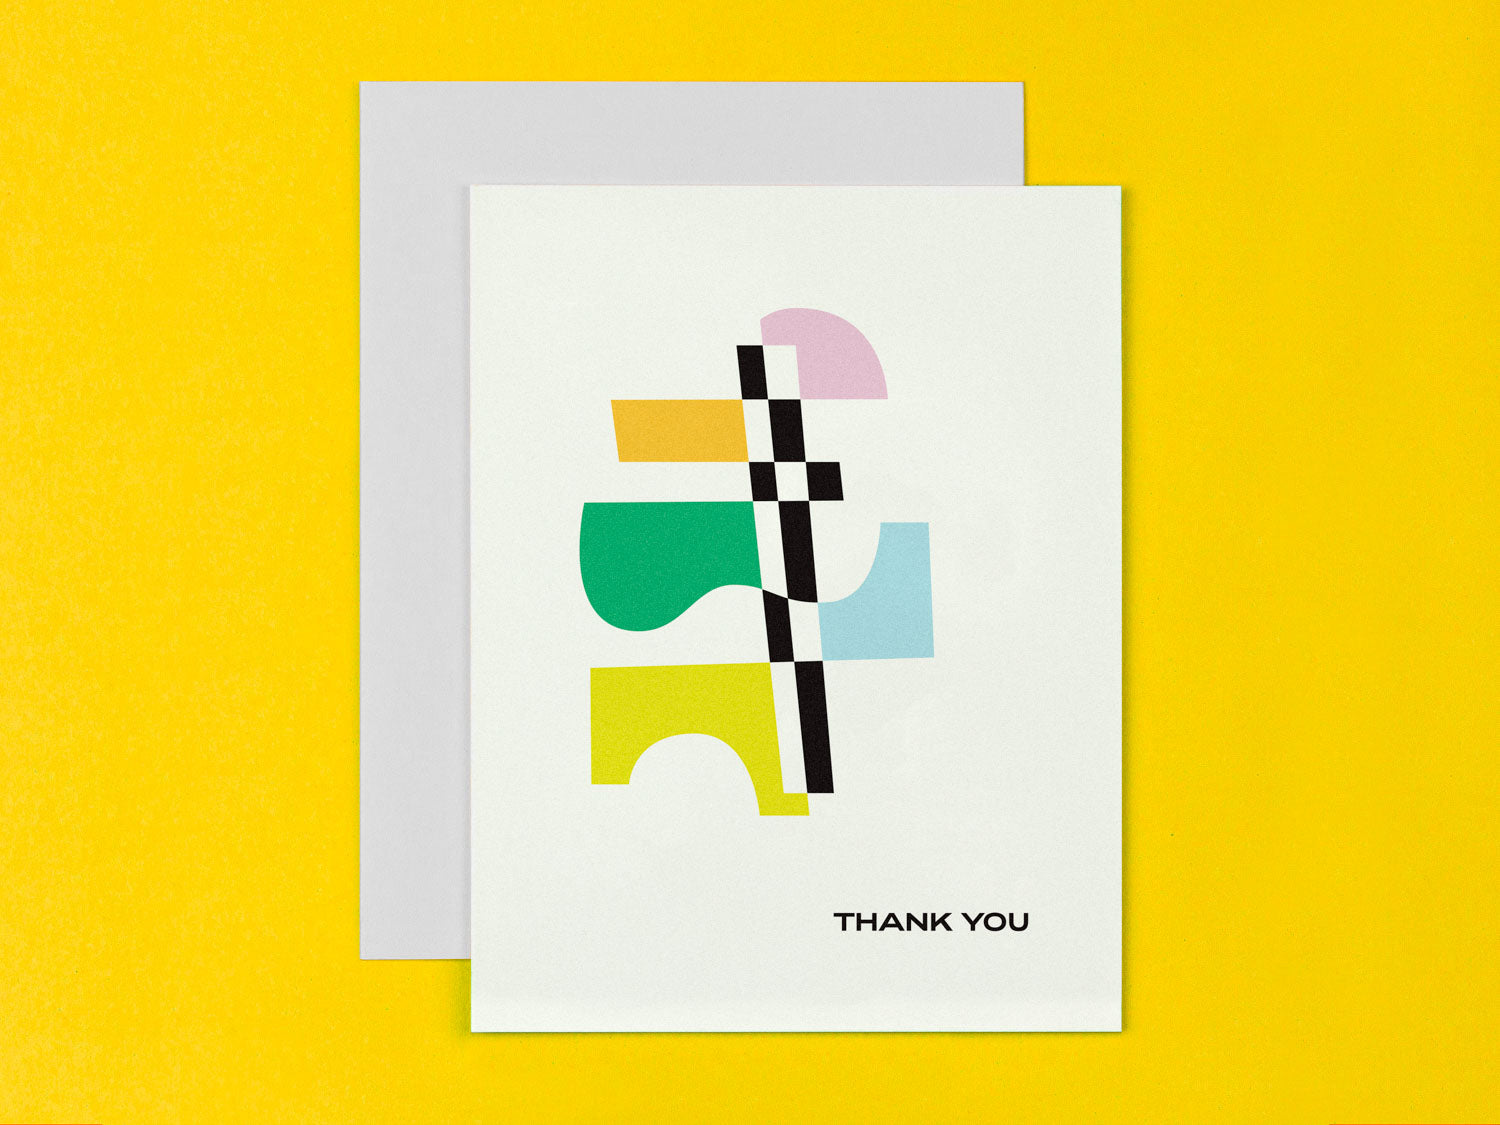 Abstract Thank You card with vaguely art deco inspired design. Made in USA by My Darlin' @mydarlin_bk